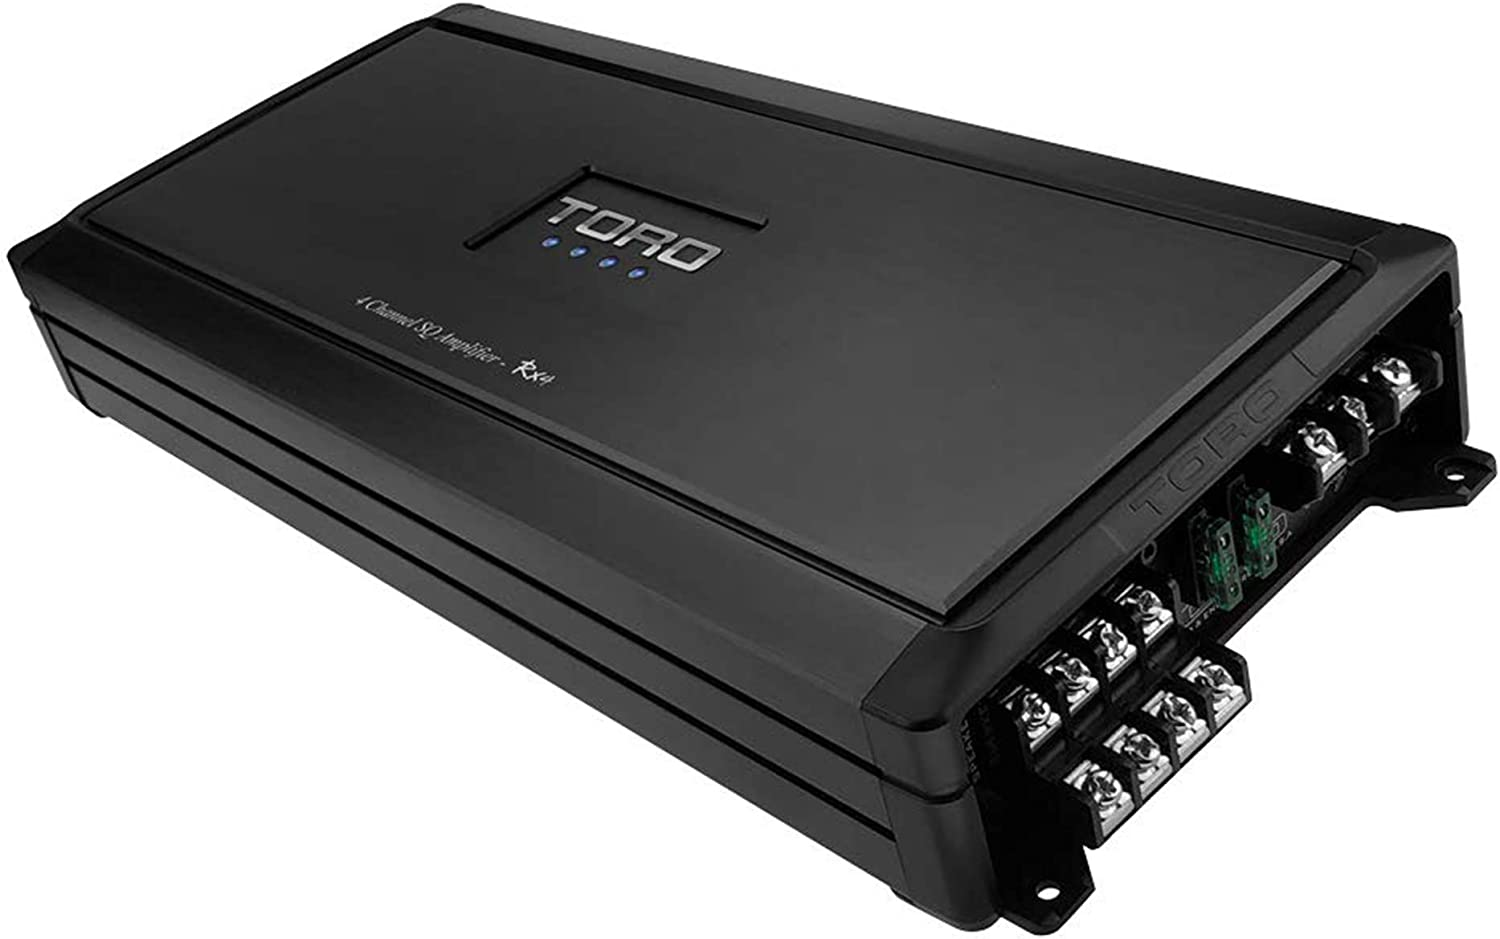 Sound Quality Class A//B Design TORO TECH 100 Watts x 4 RMS @ 4 Ohm 1200 Watts Peak 4 Channel Car Amplifier RX4S Built-in Auto Sensing Turn-On Full Range Speaker or Subwoofer Amplifier